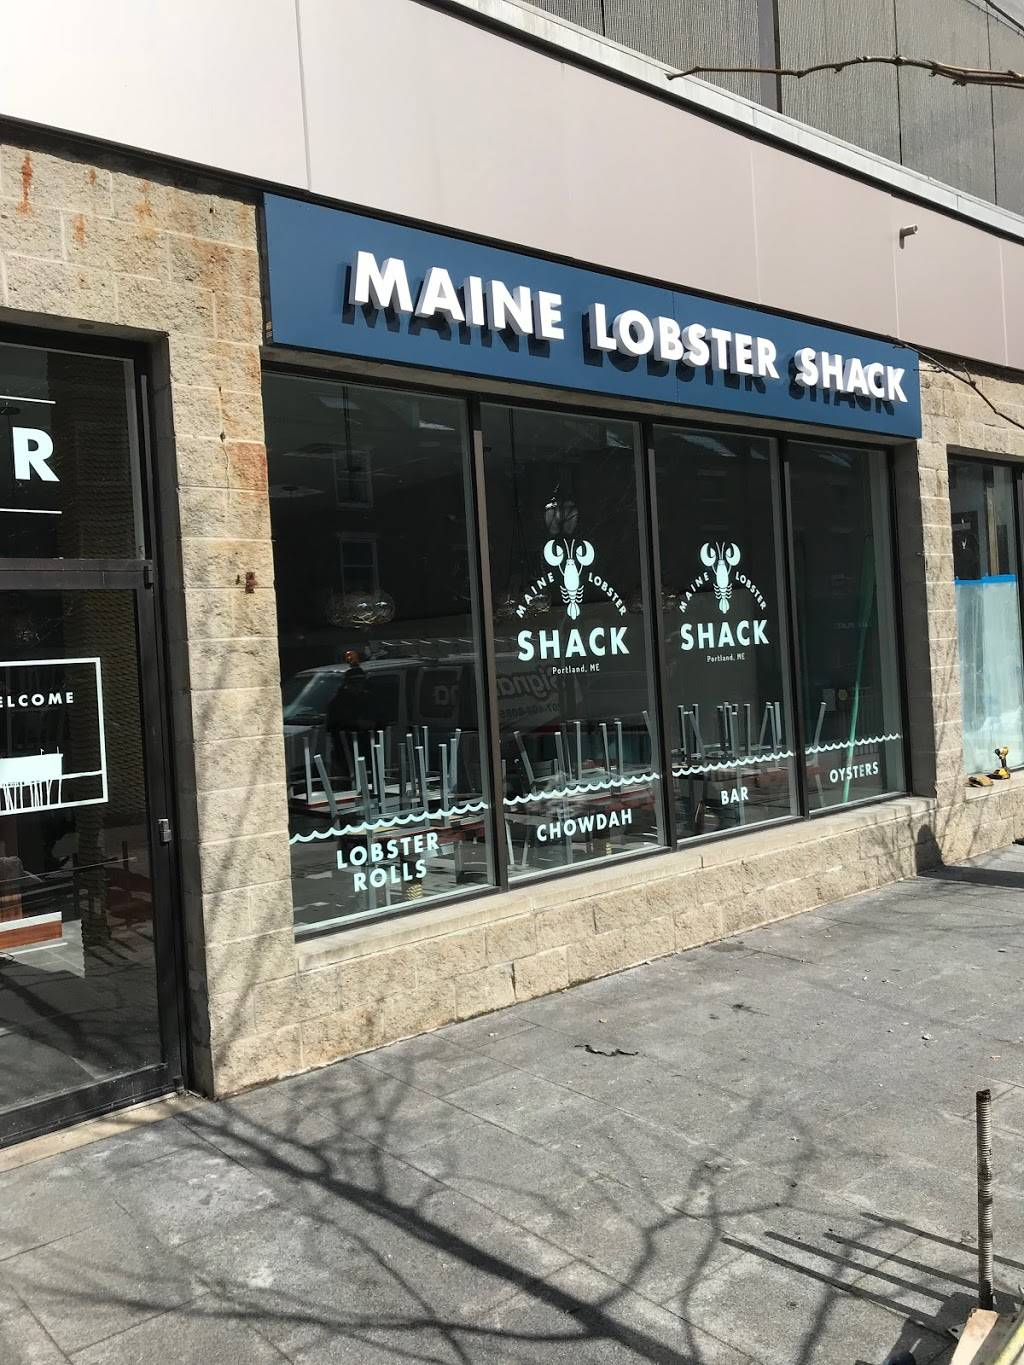 Maine Lobster Shack | restaurant | 425 Fore St, Portland, ME 04101, USA | 2078350700 OR +1 207-835-0700